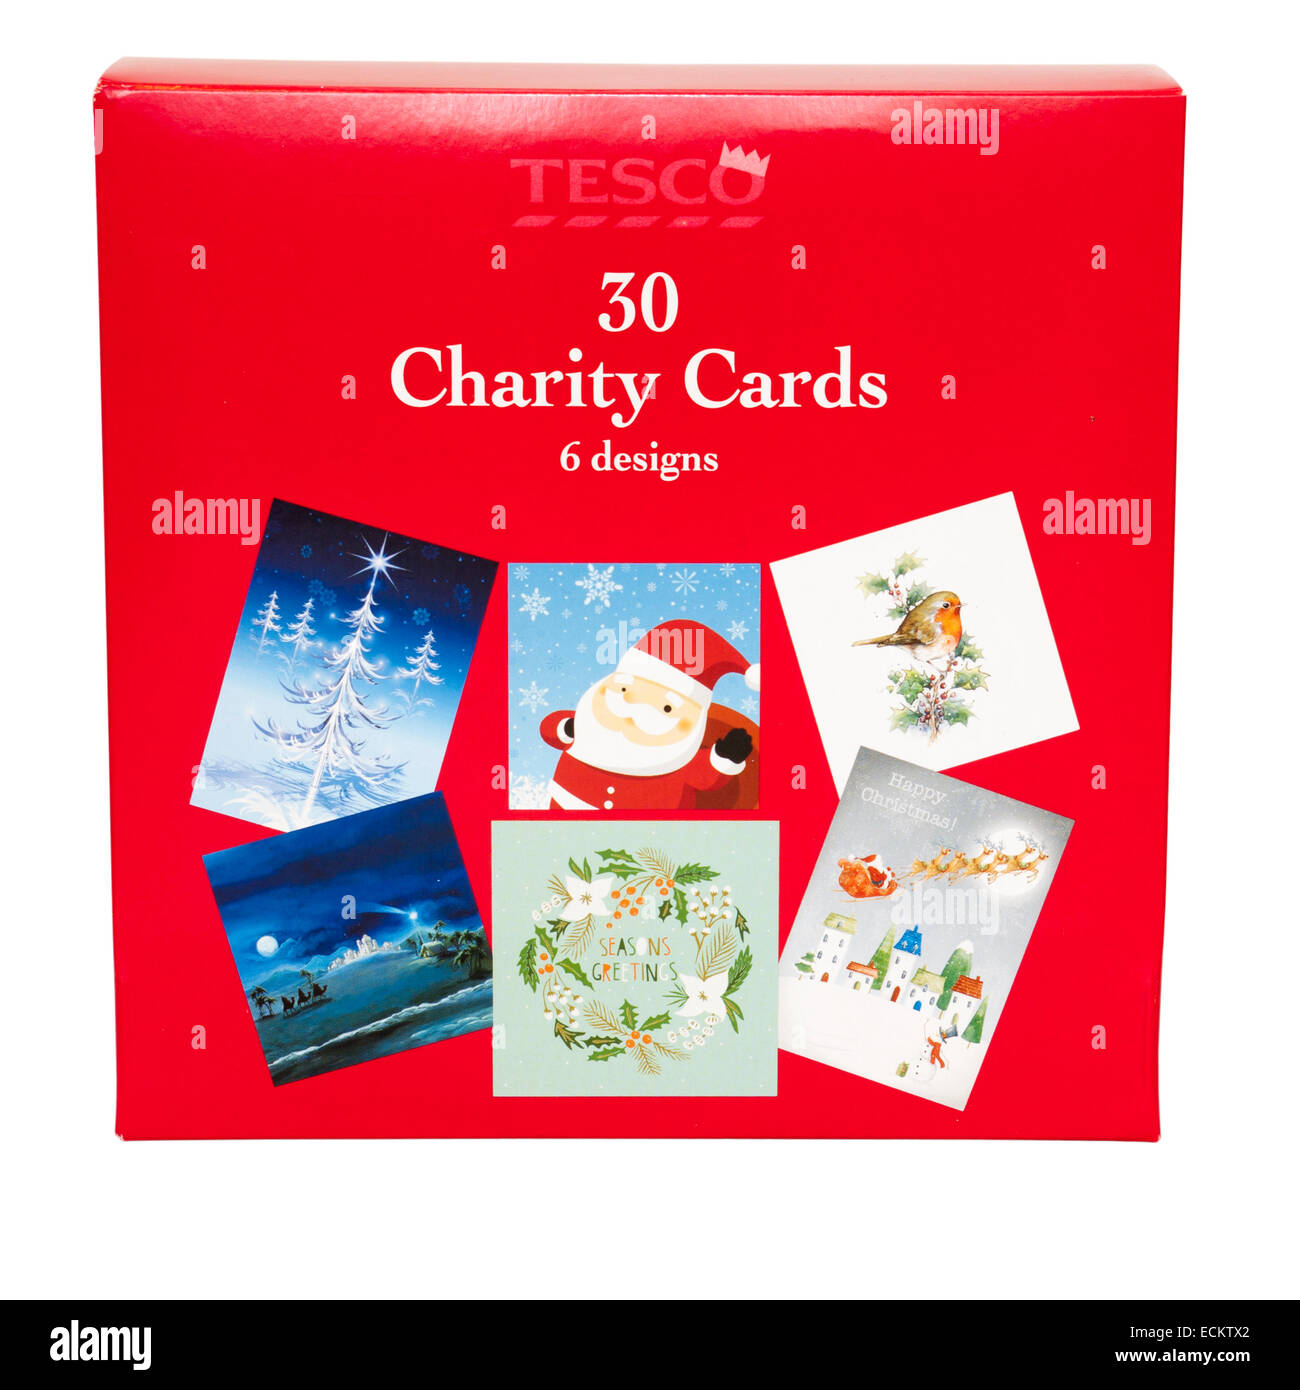 closed shut box of tesco own brand charity christmas cards stock image - Christmas Card Closings